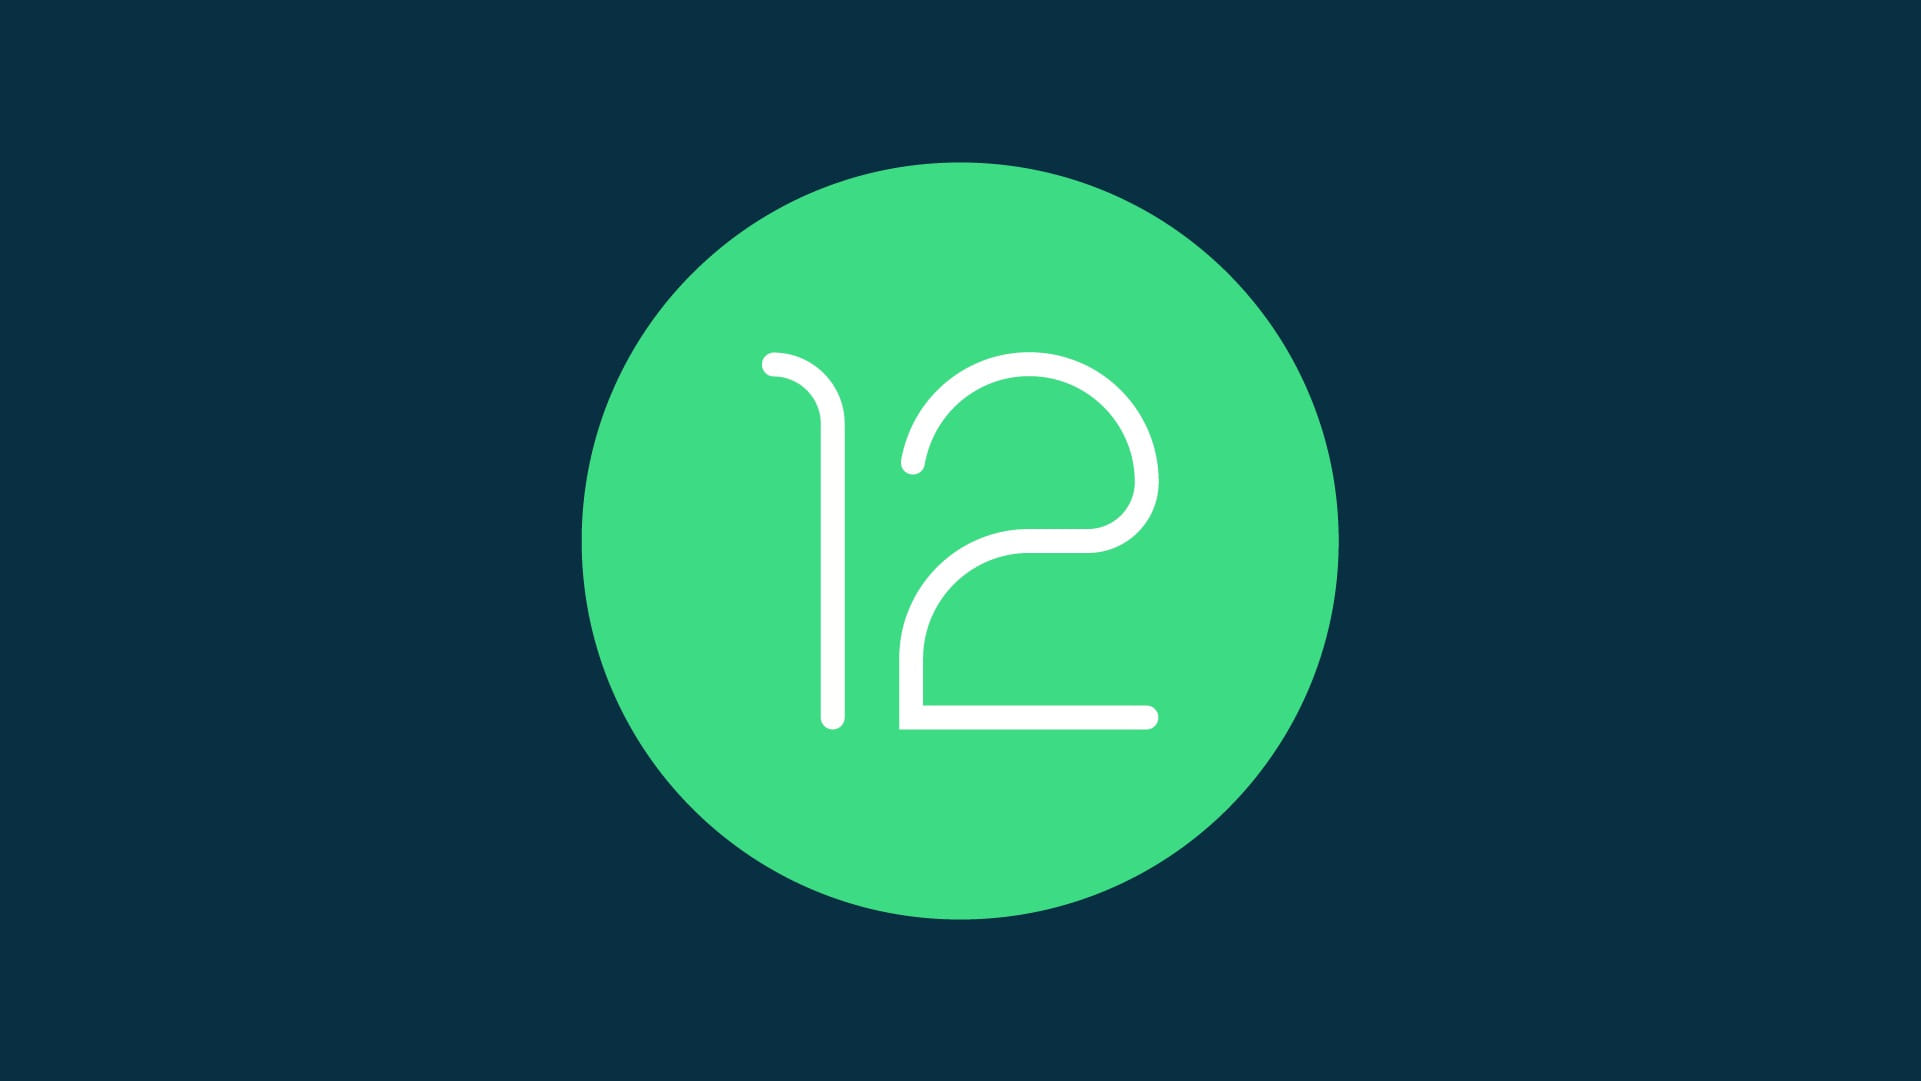 android 12 features, how to install android 12 on any smartphone, install android 12, how to update android 12, android 12 on any smartphone